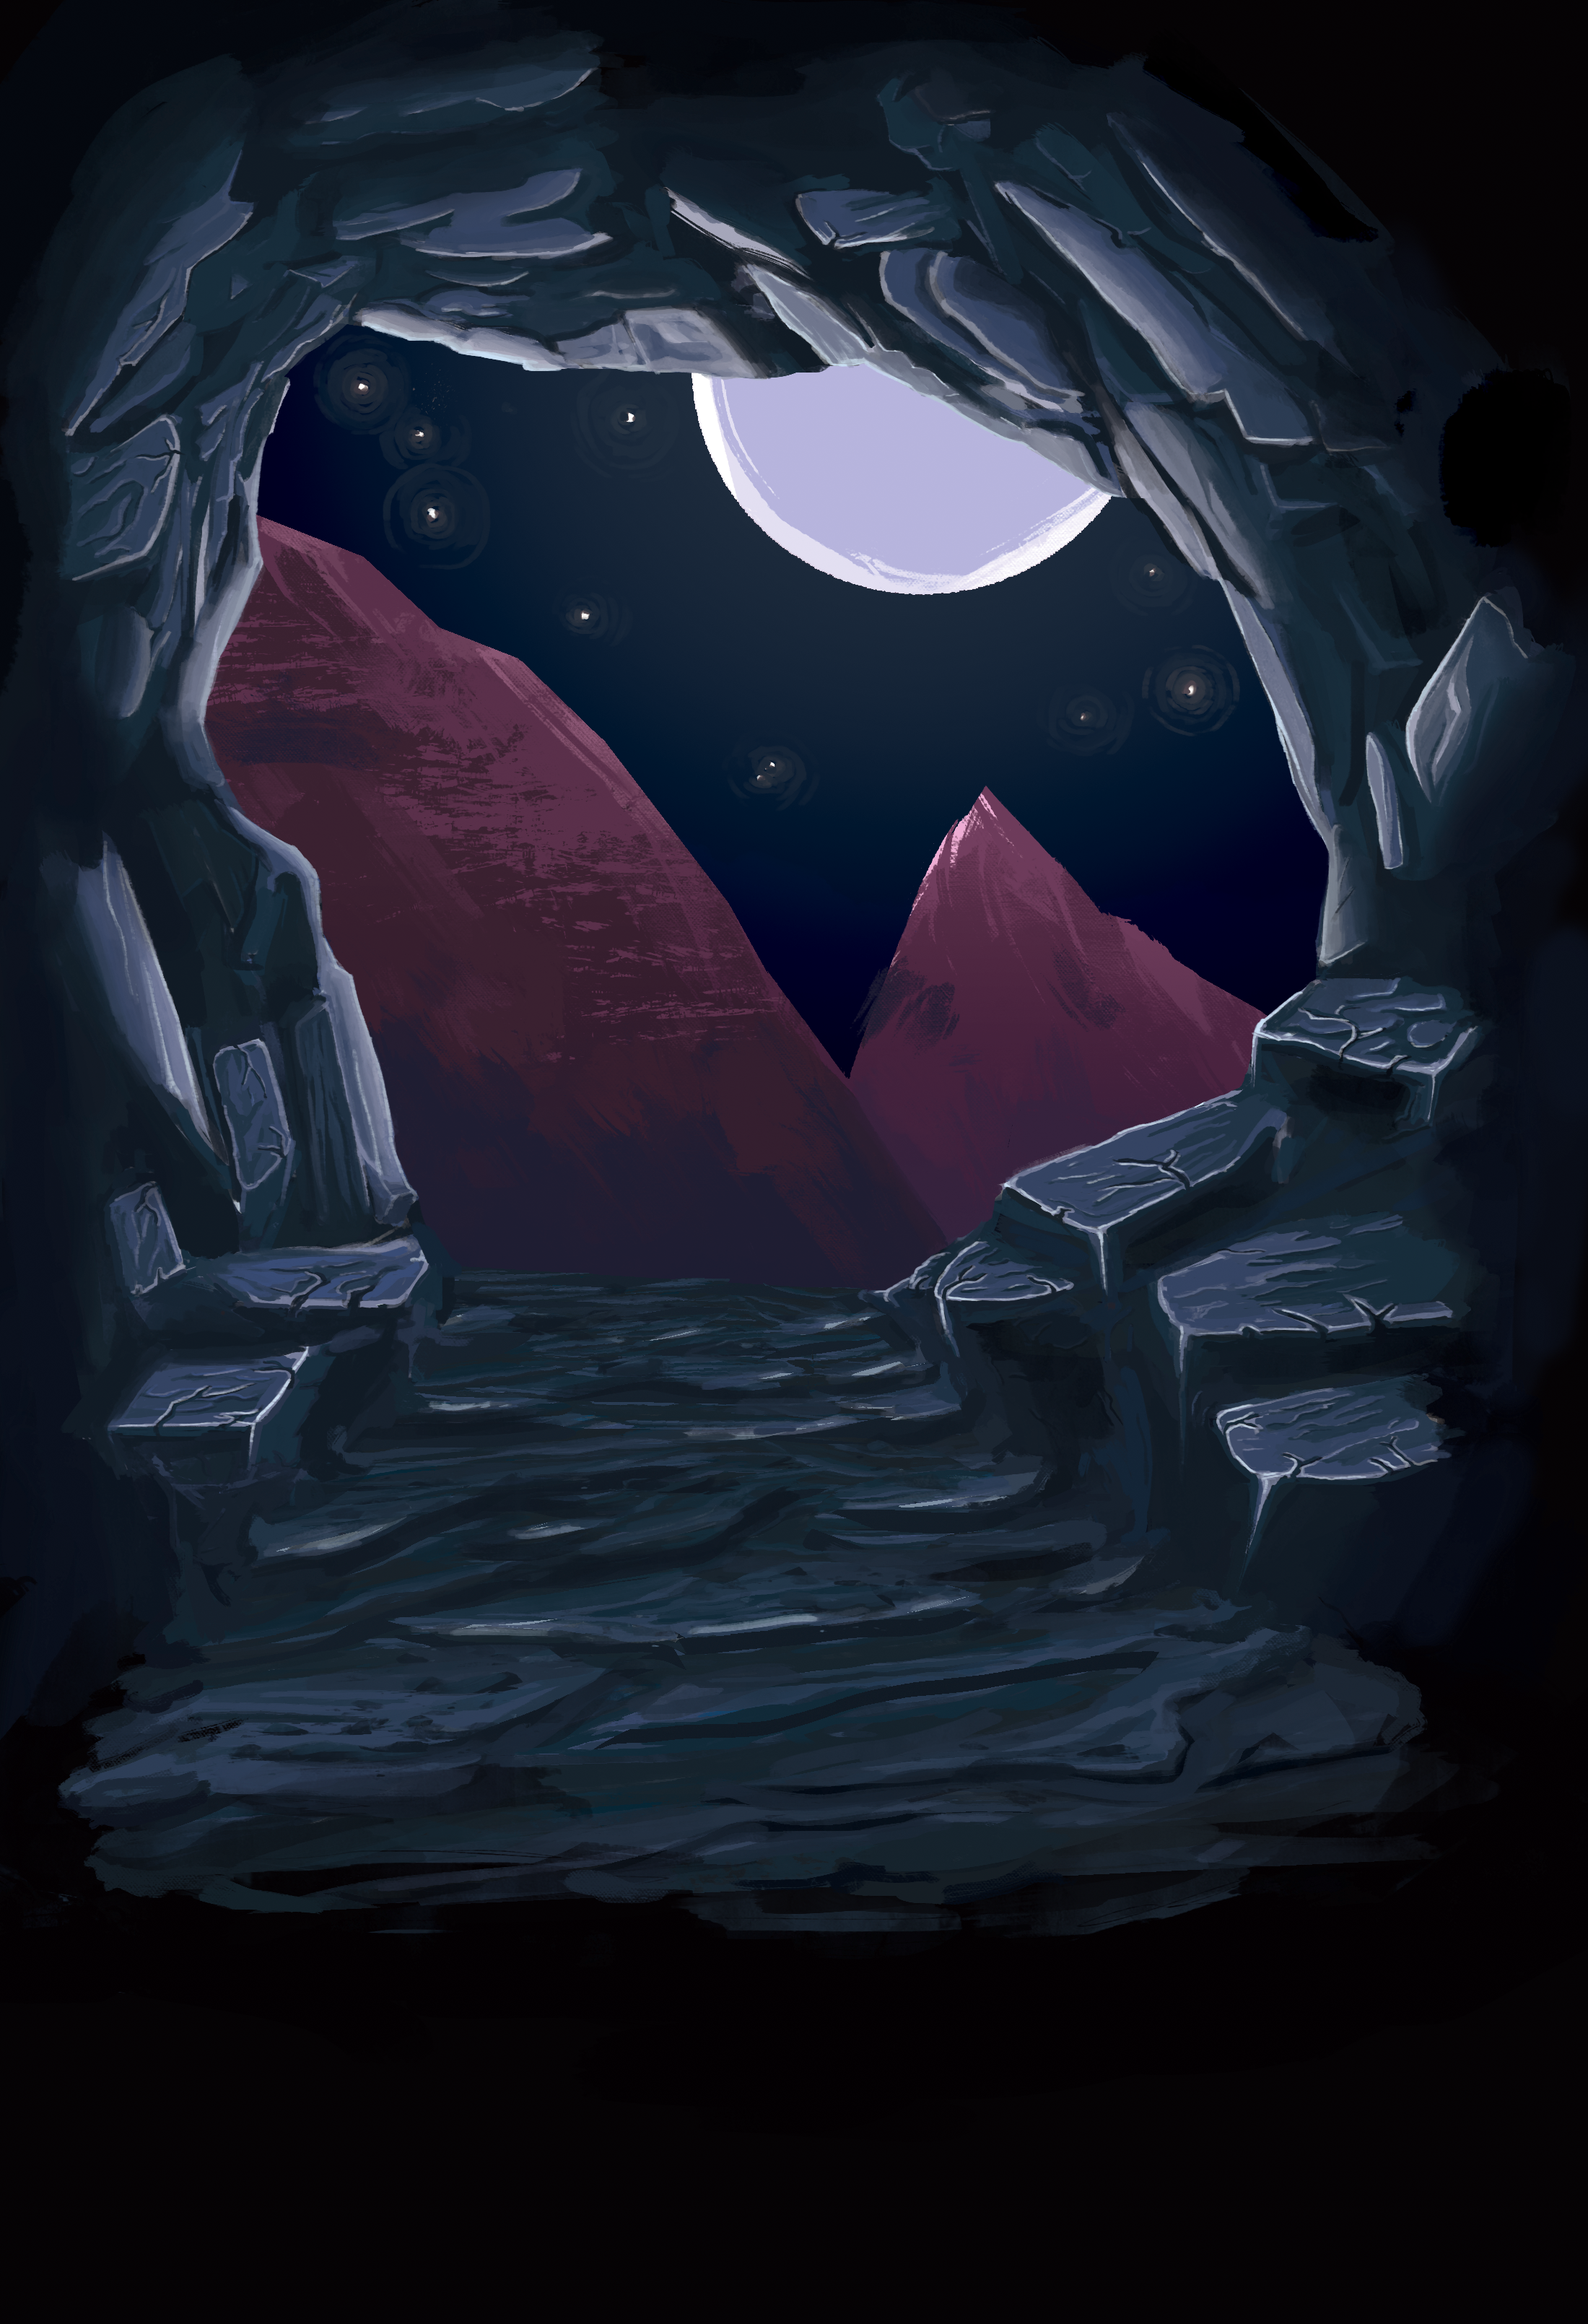 Moody cave